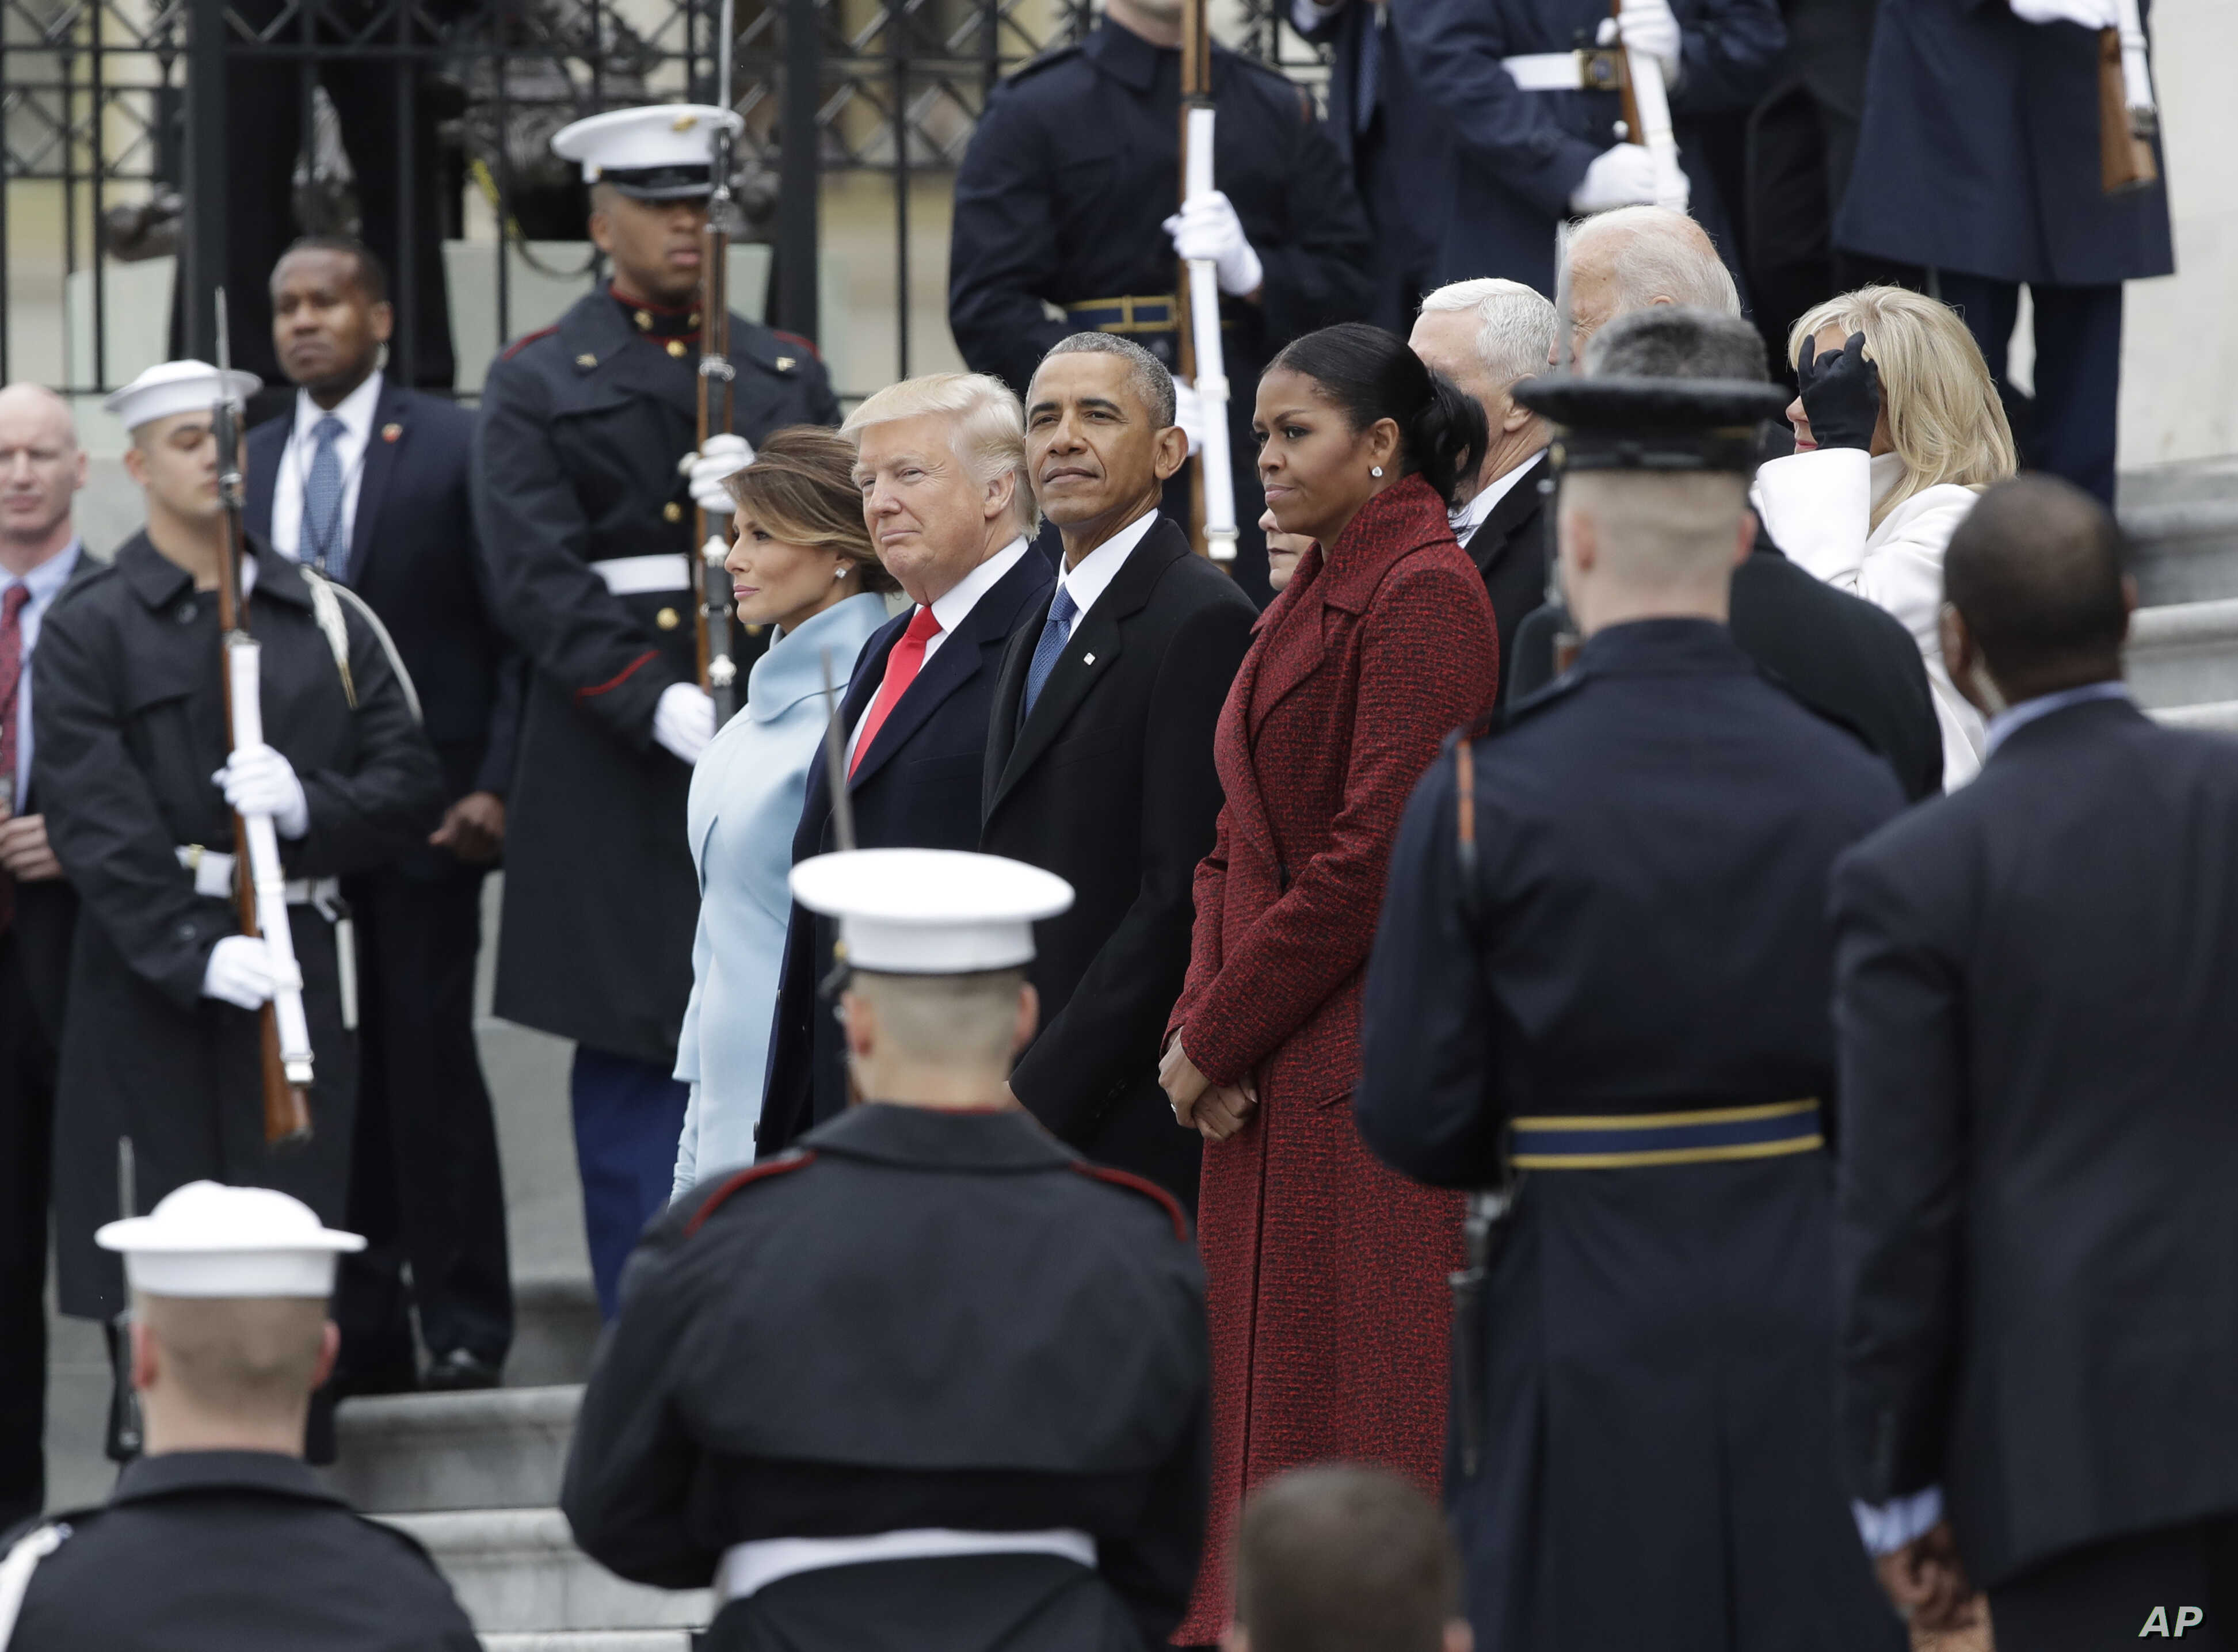 Former President Barack Obama and his wife Michelle stand with President Donald Trump and first lady Melania Trump during a departure ceremony on the East Front of the U.S. Capitol in Washington, Jan. 20, 2017, after Trump was inaugurated.